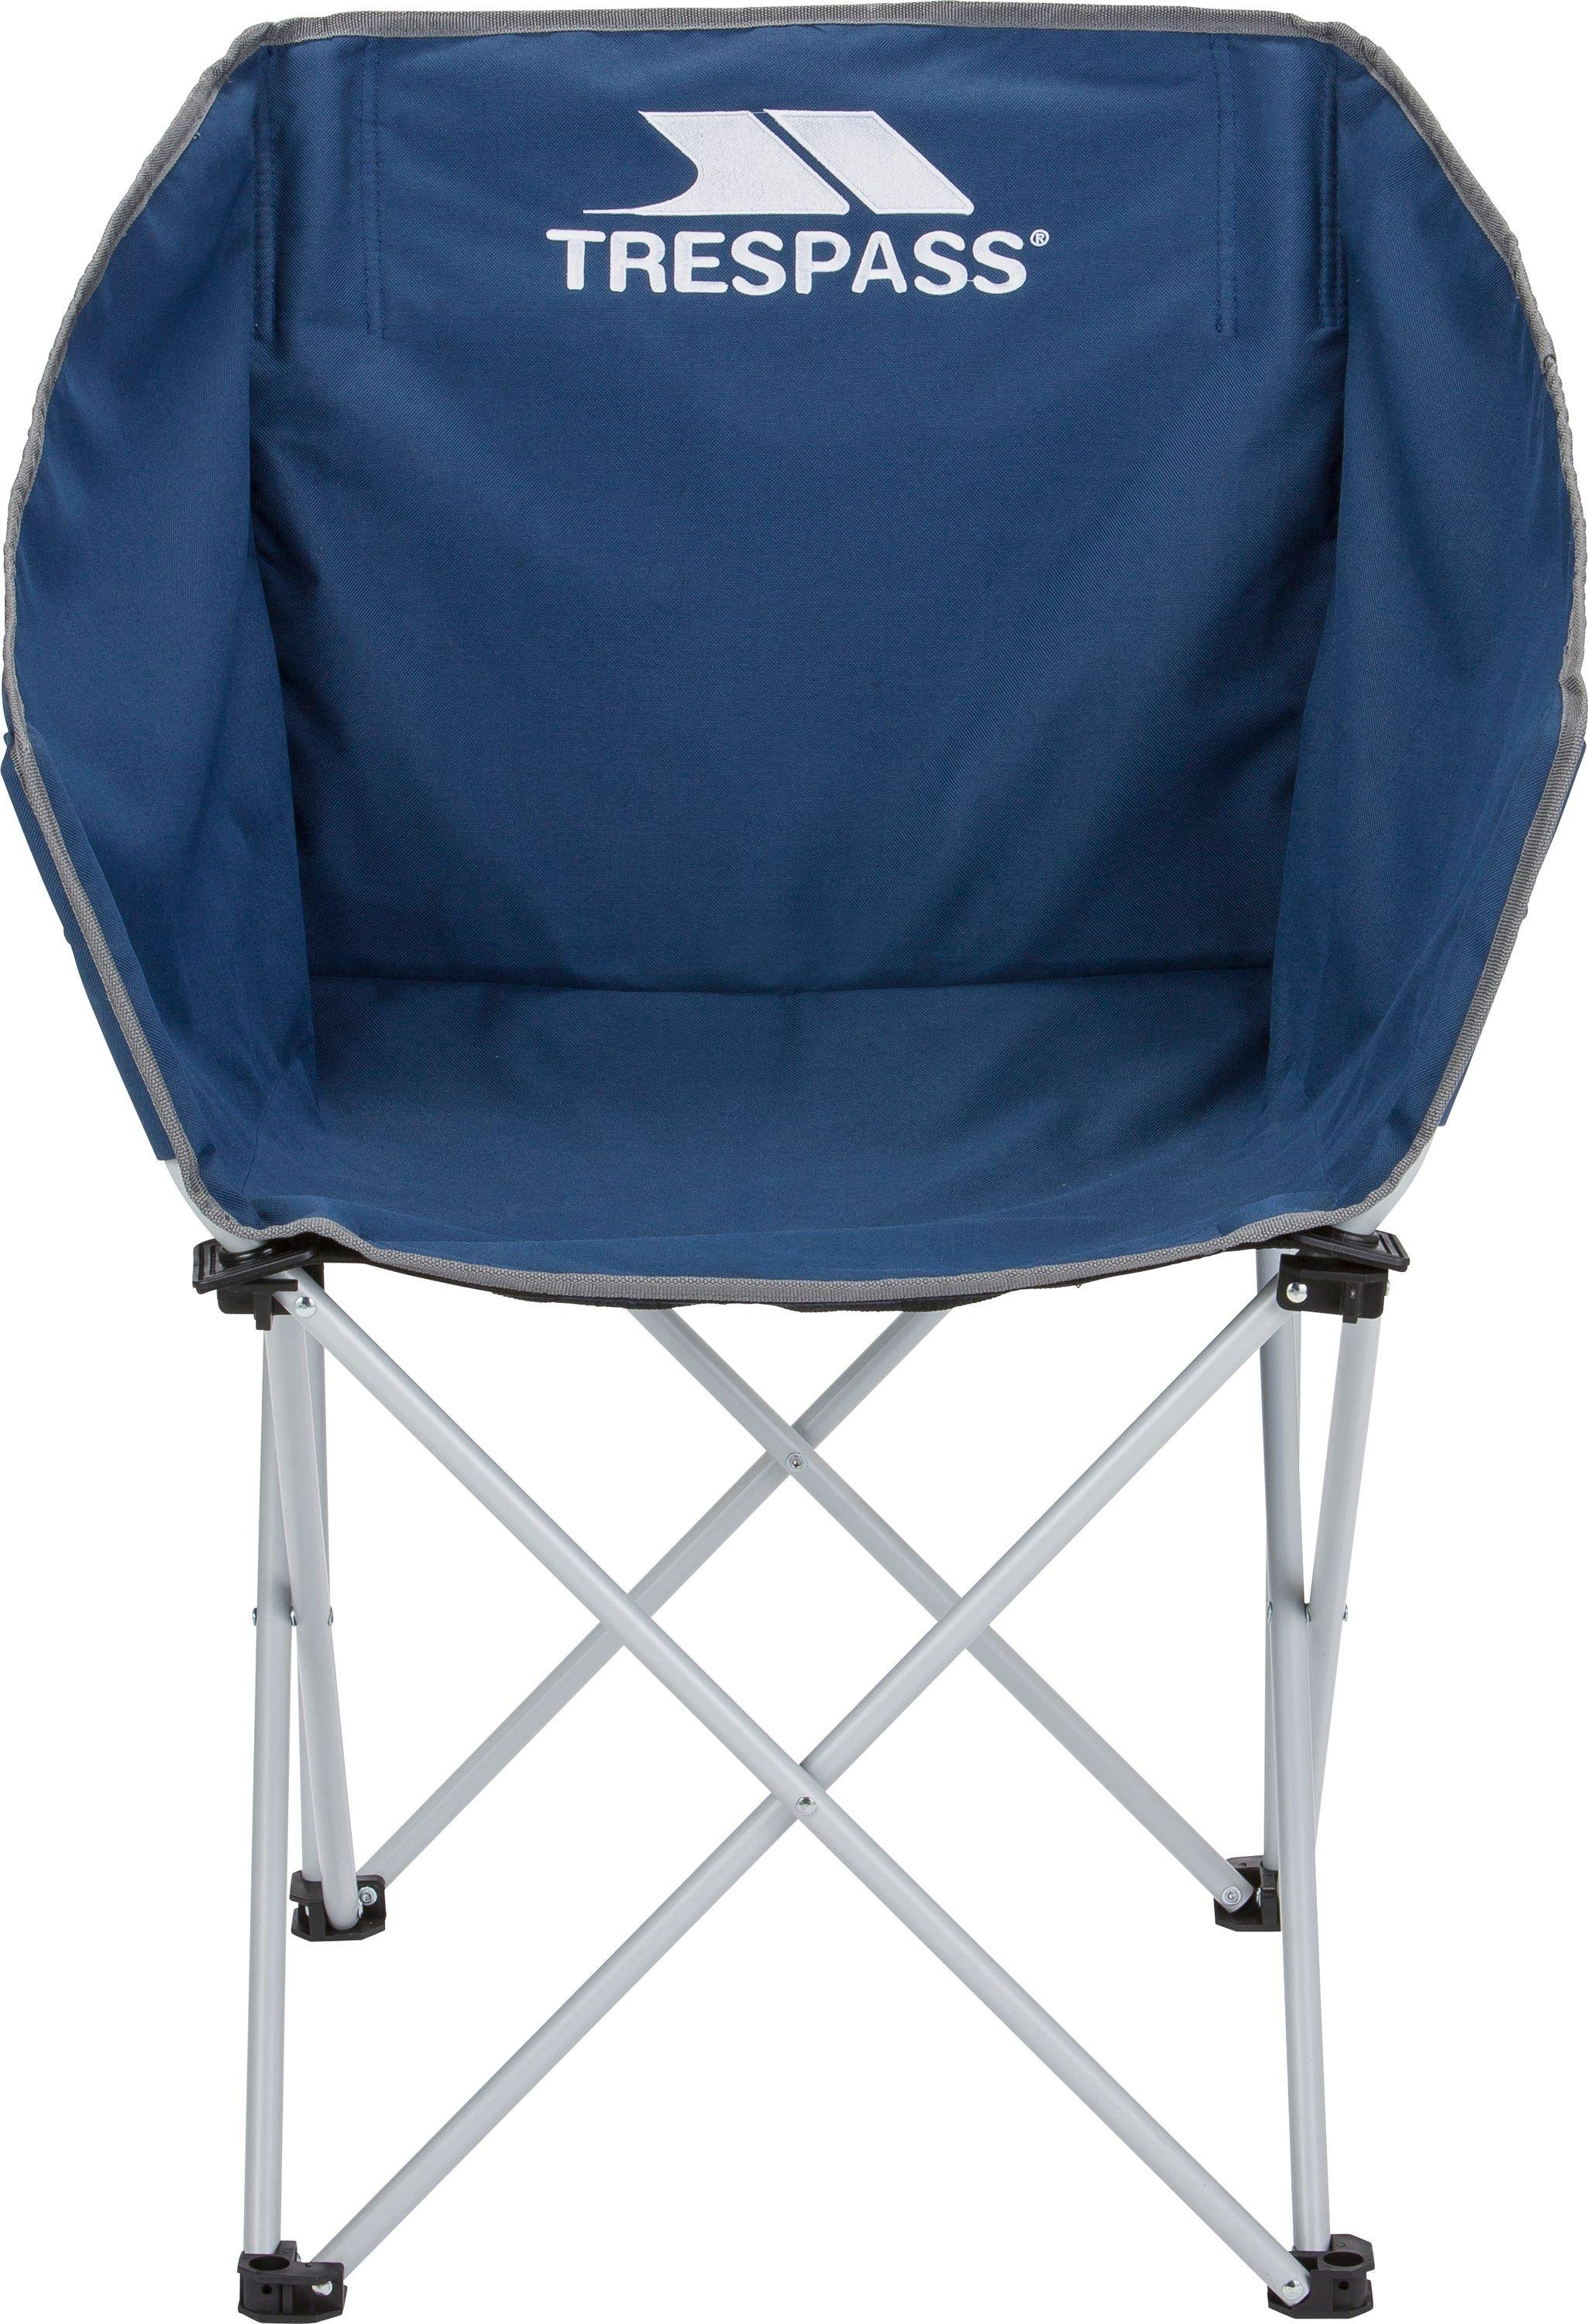 buy trespass adult bucket camping chair at argos.co.uk - your